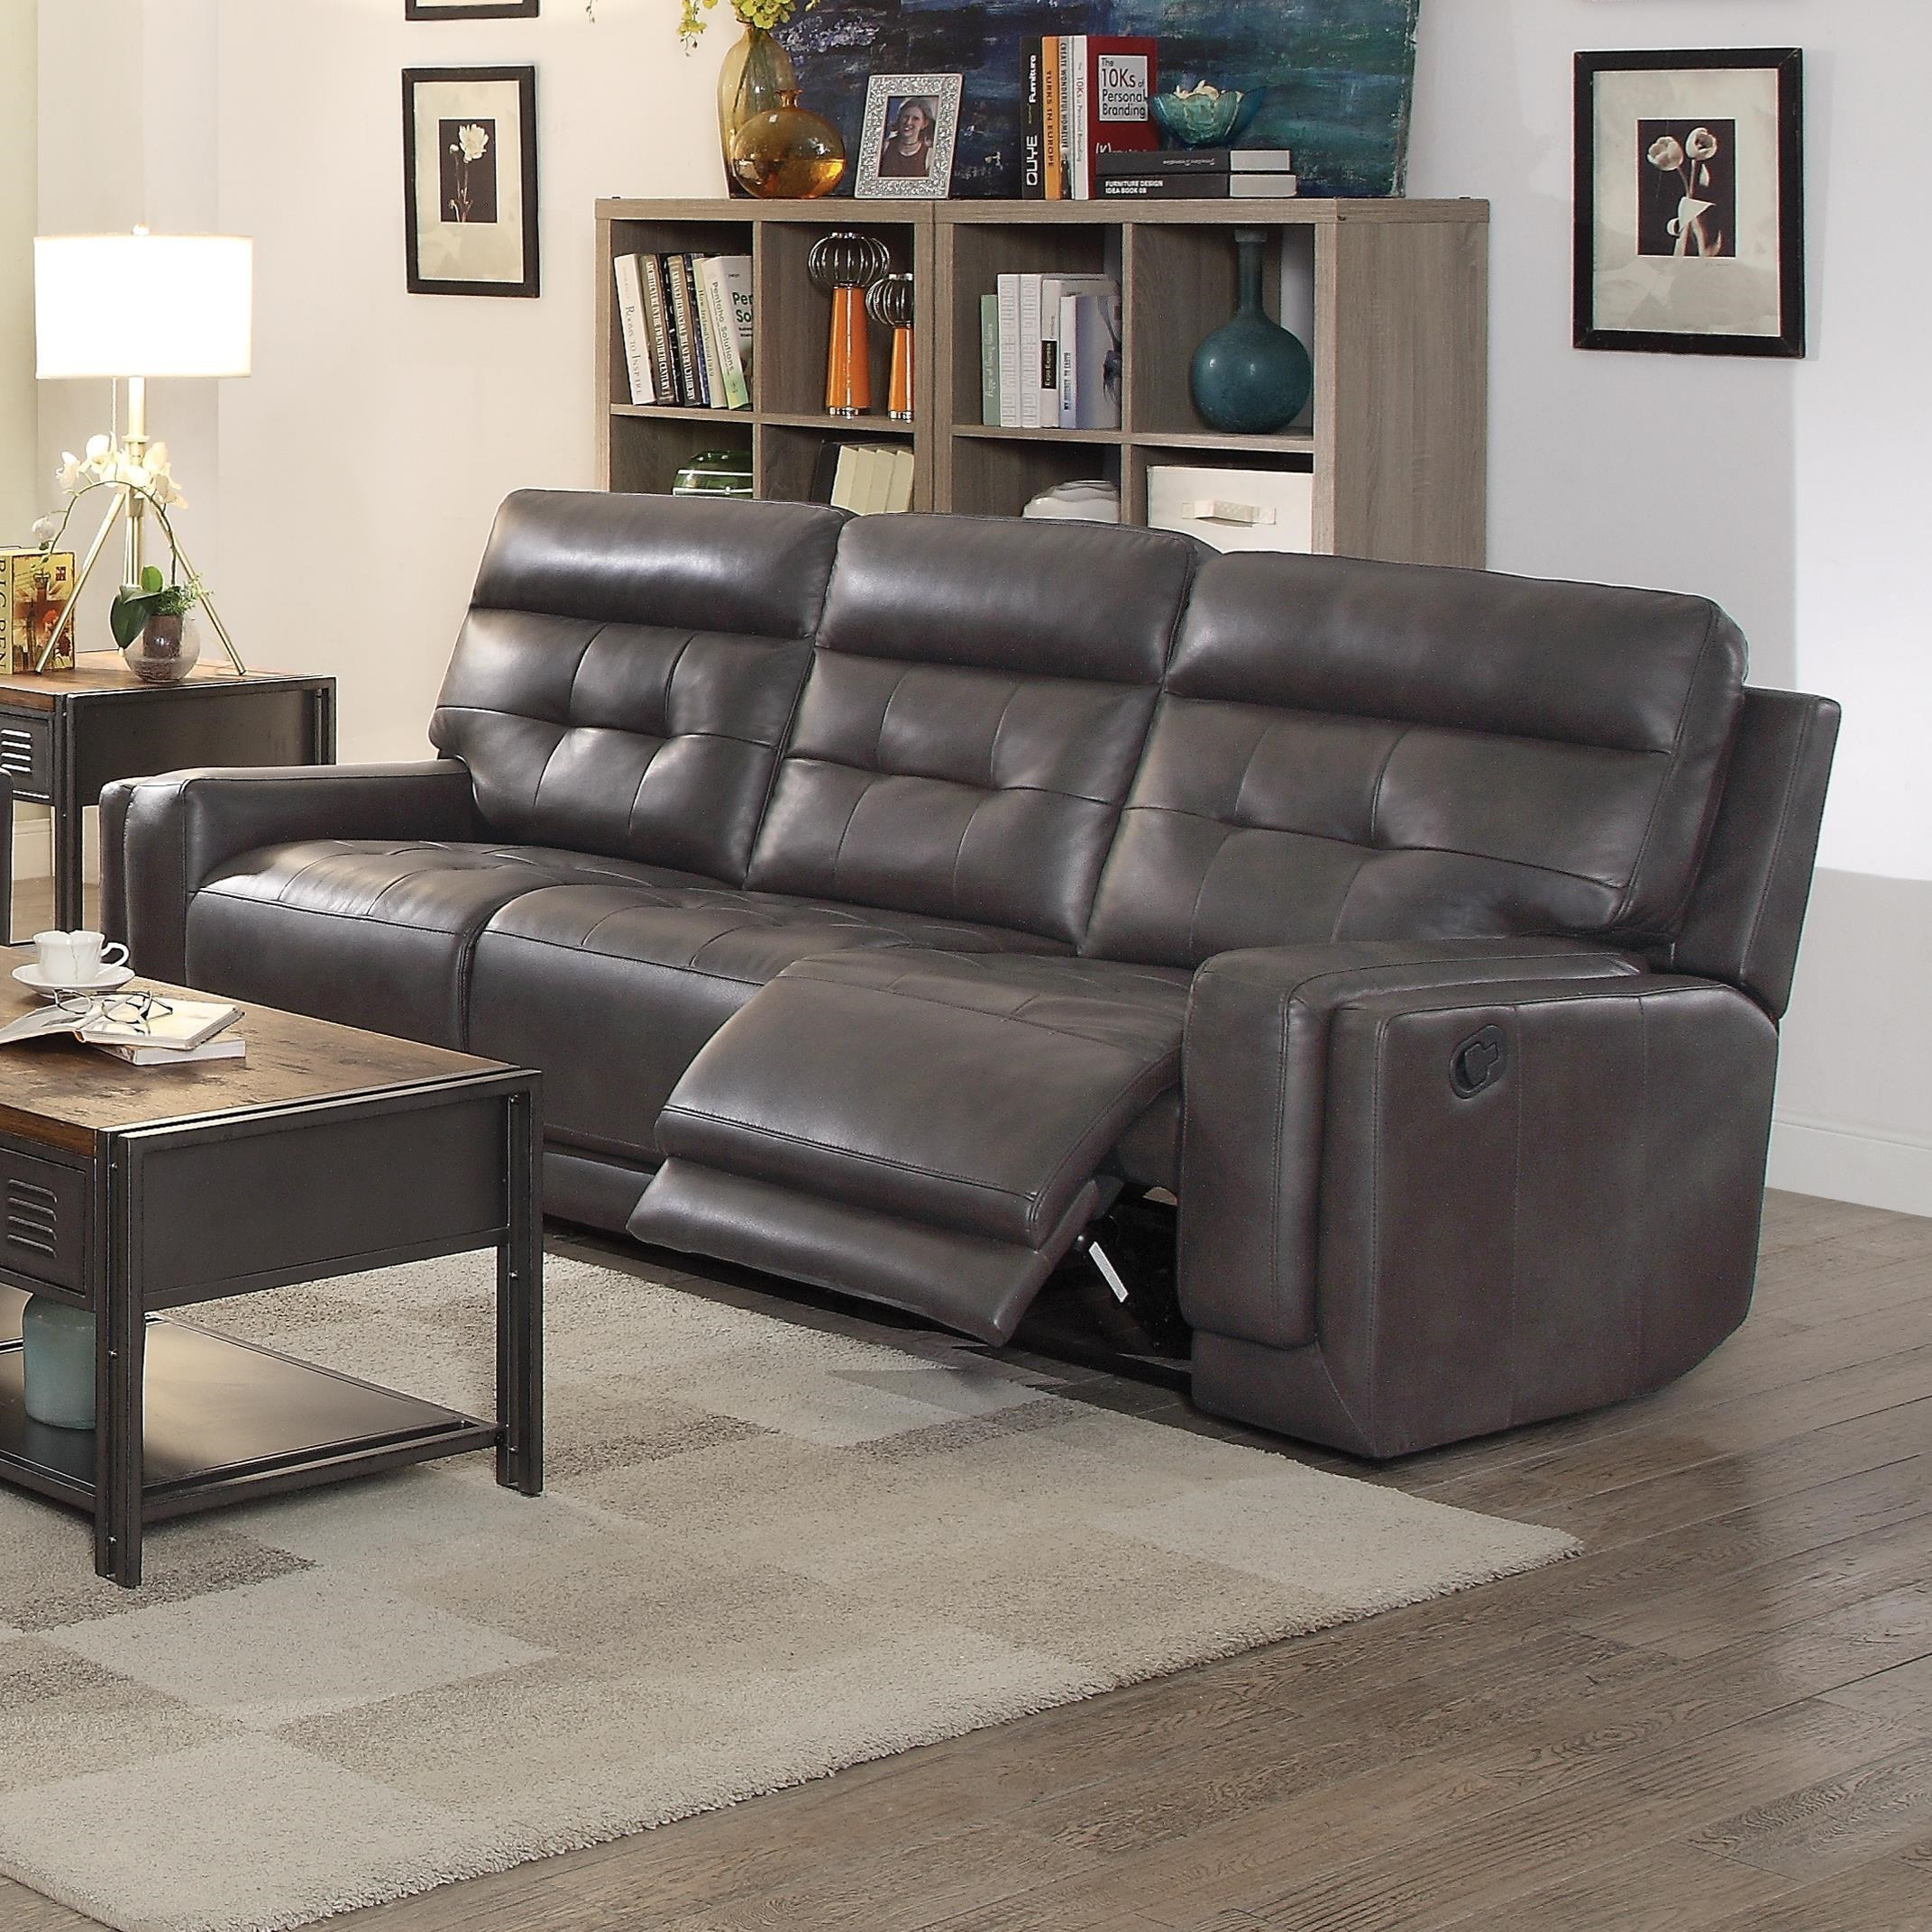 Trenton Motion Sofa With Tufted Cushions And Track Arms